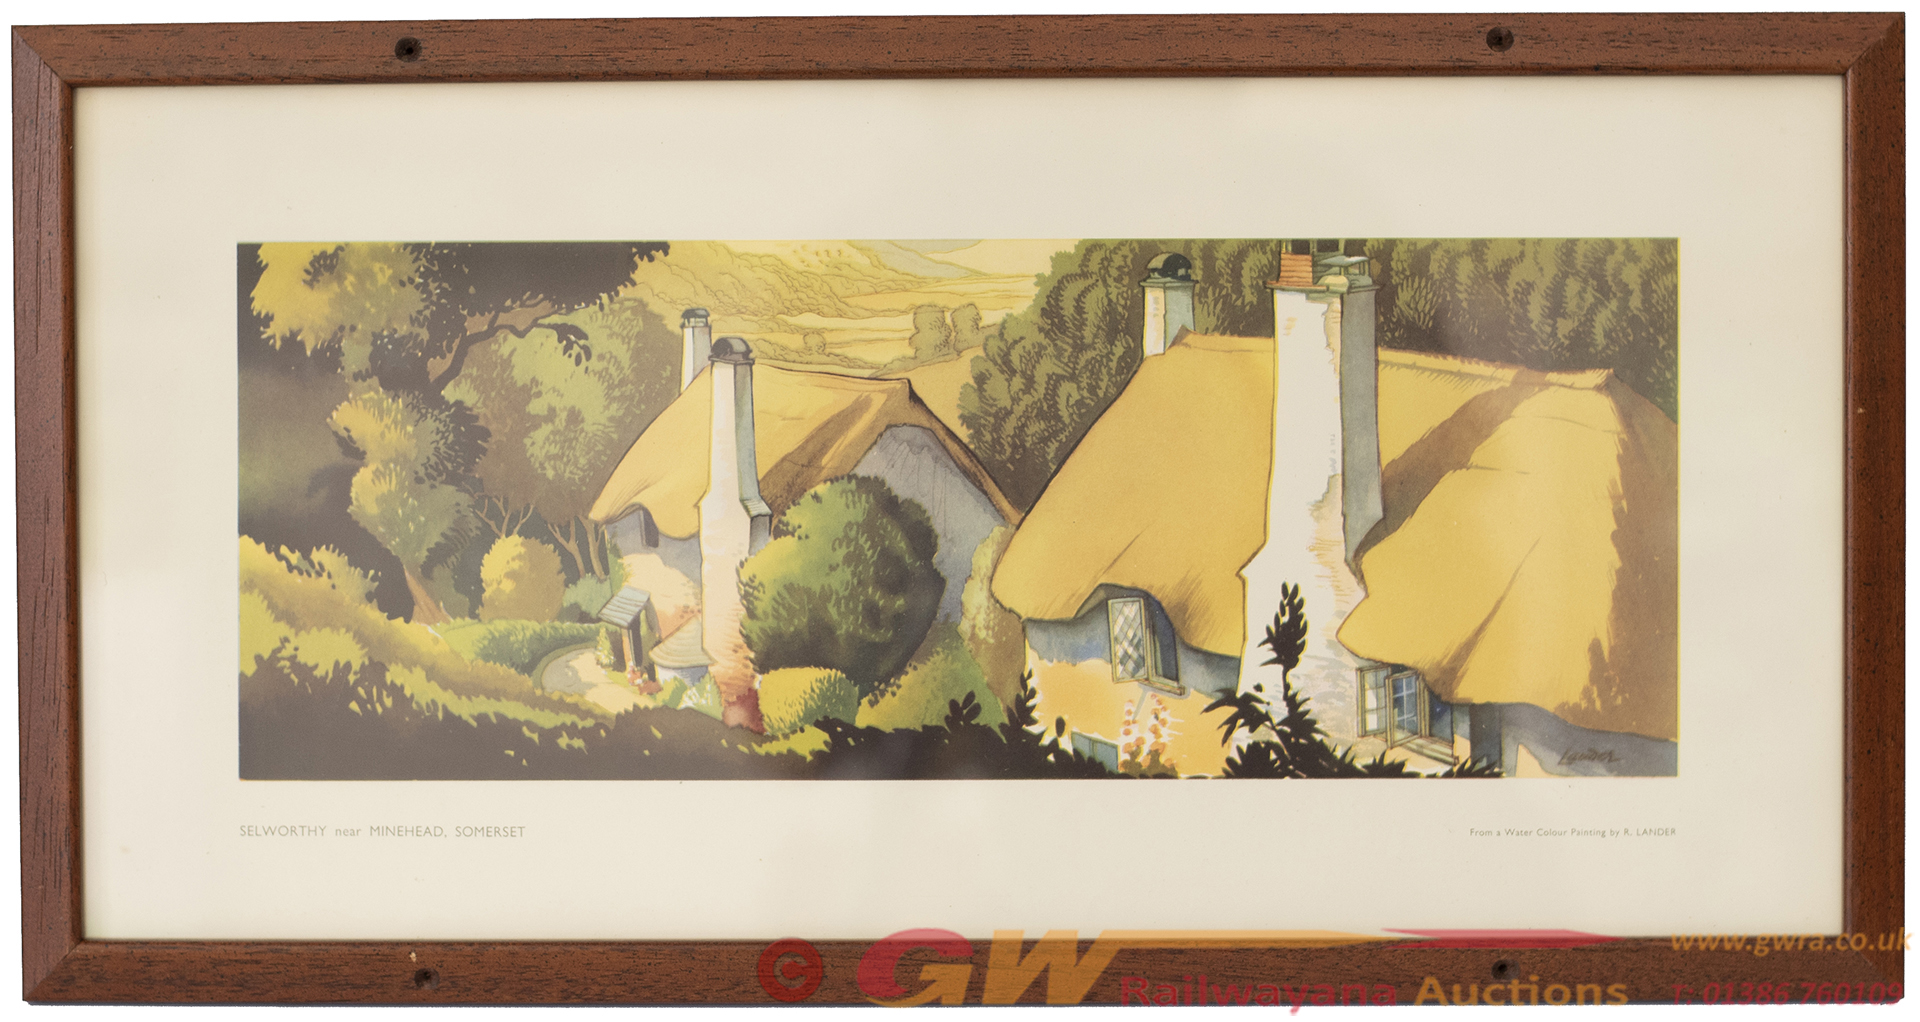 Carriage Print SELWORTHY, NR MINEHEAD, SOMERSET By